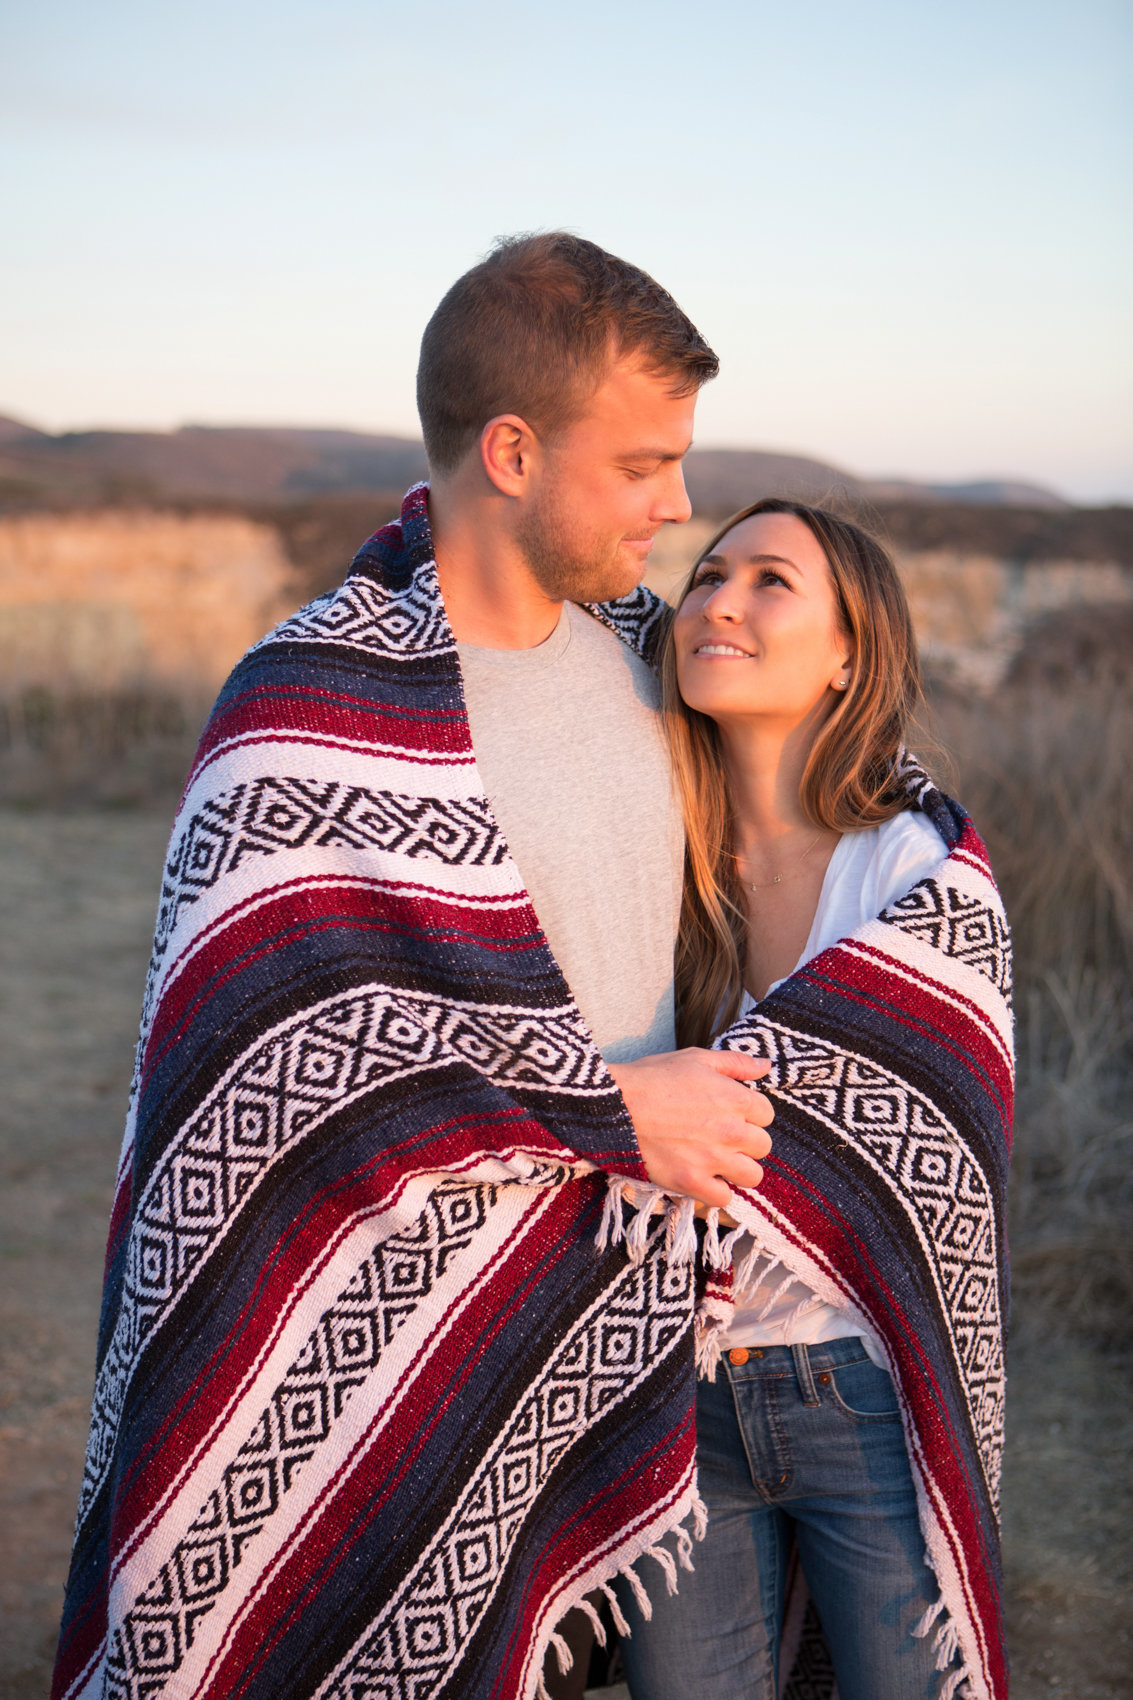 Bride and groom in blanket, natural light portrait in evening, northern california photoshoot with deneffe studios